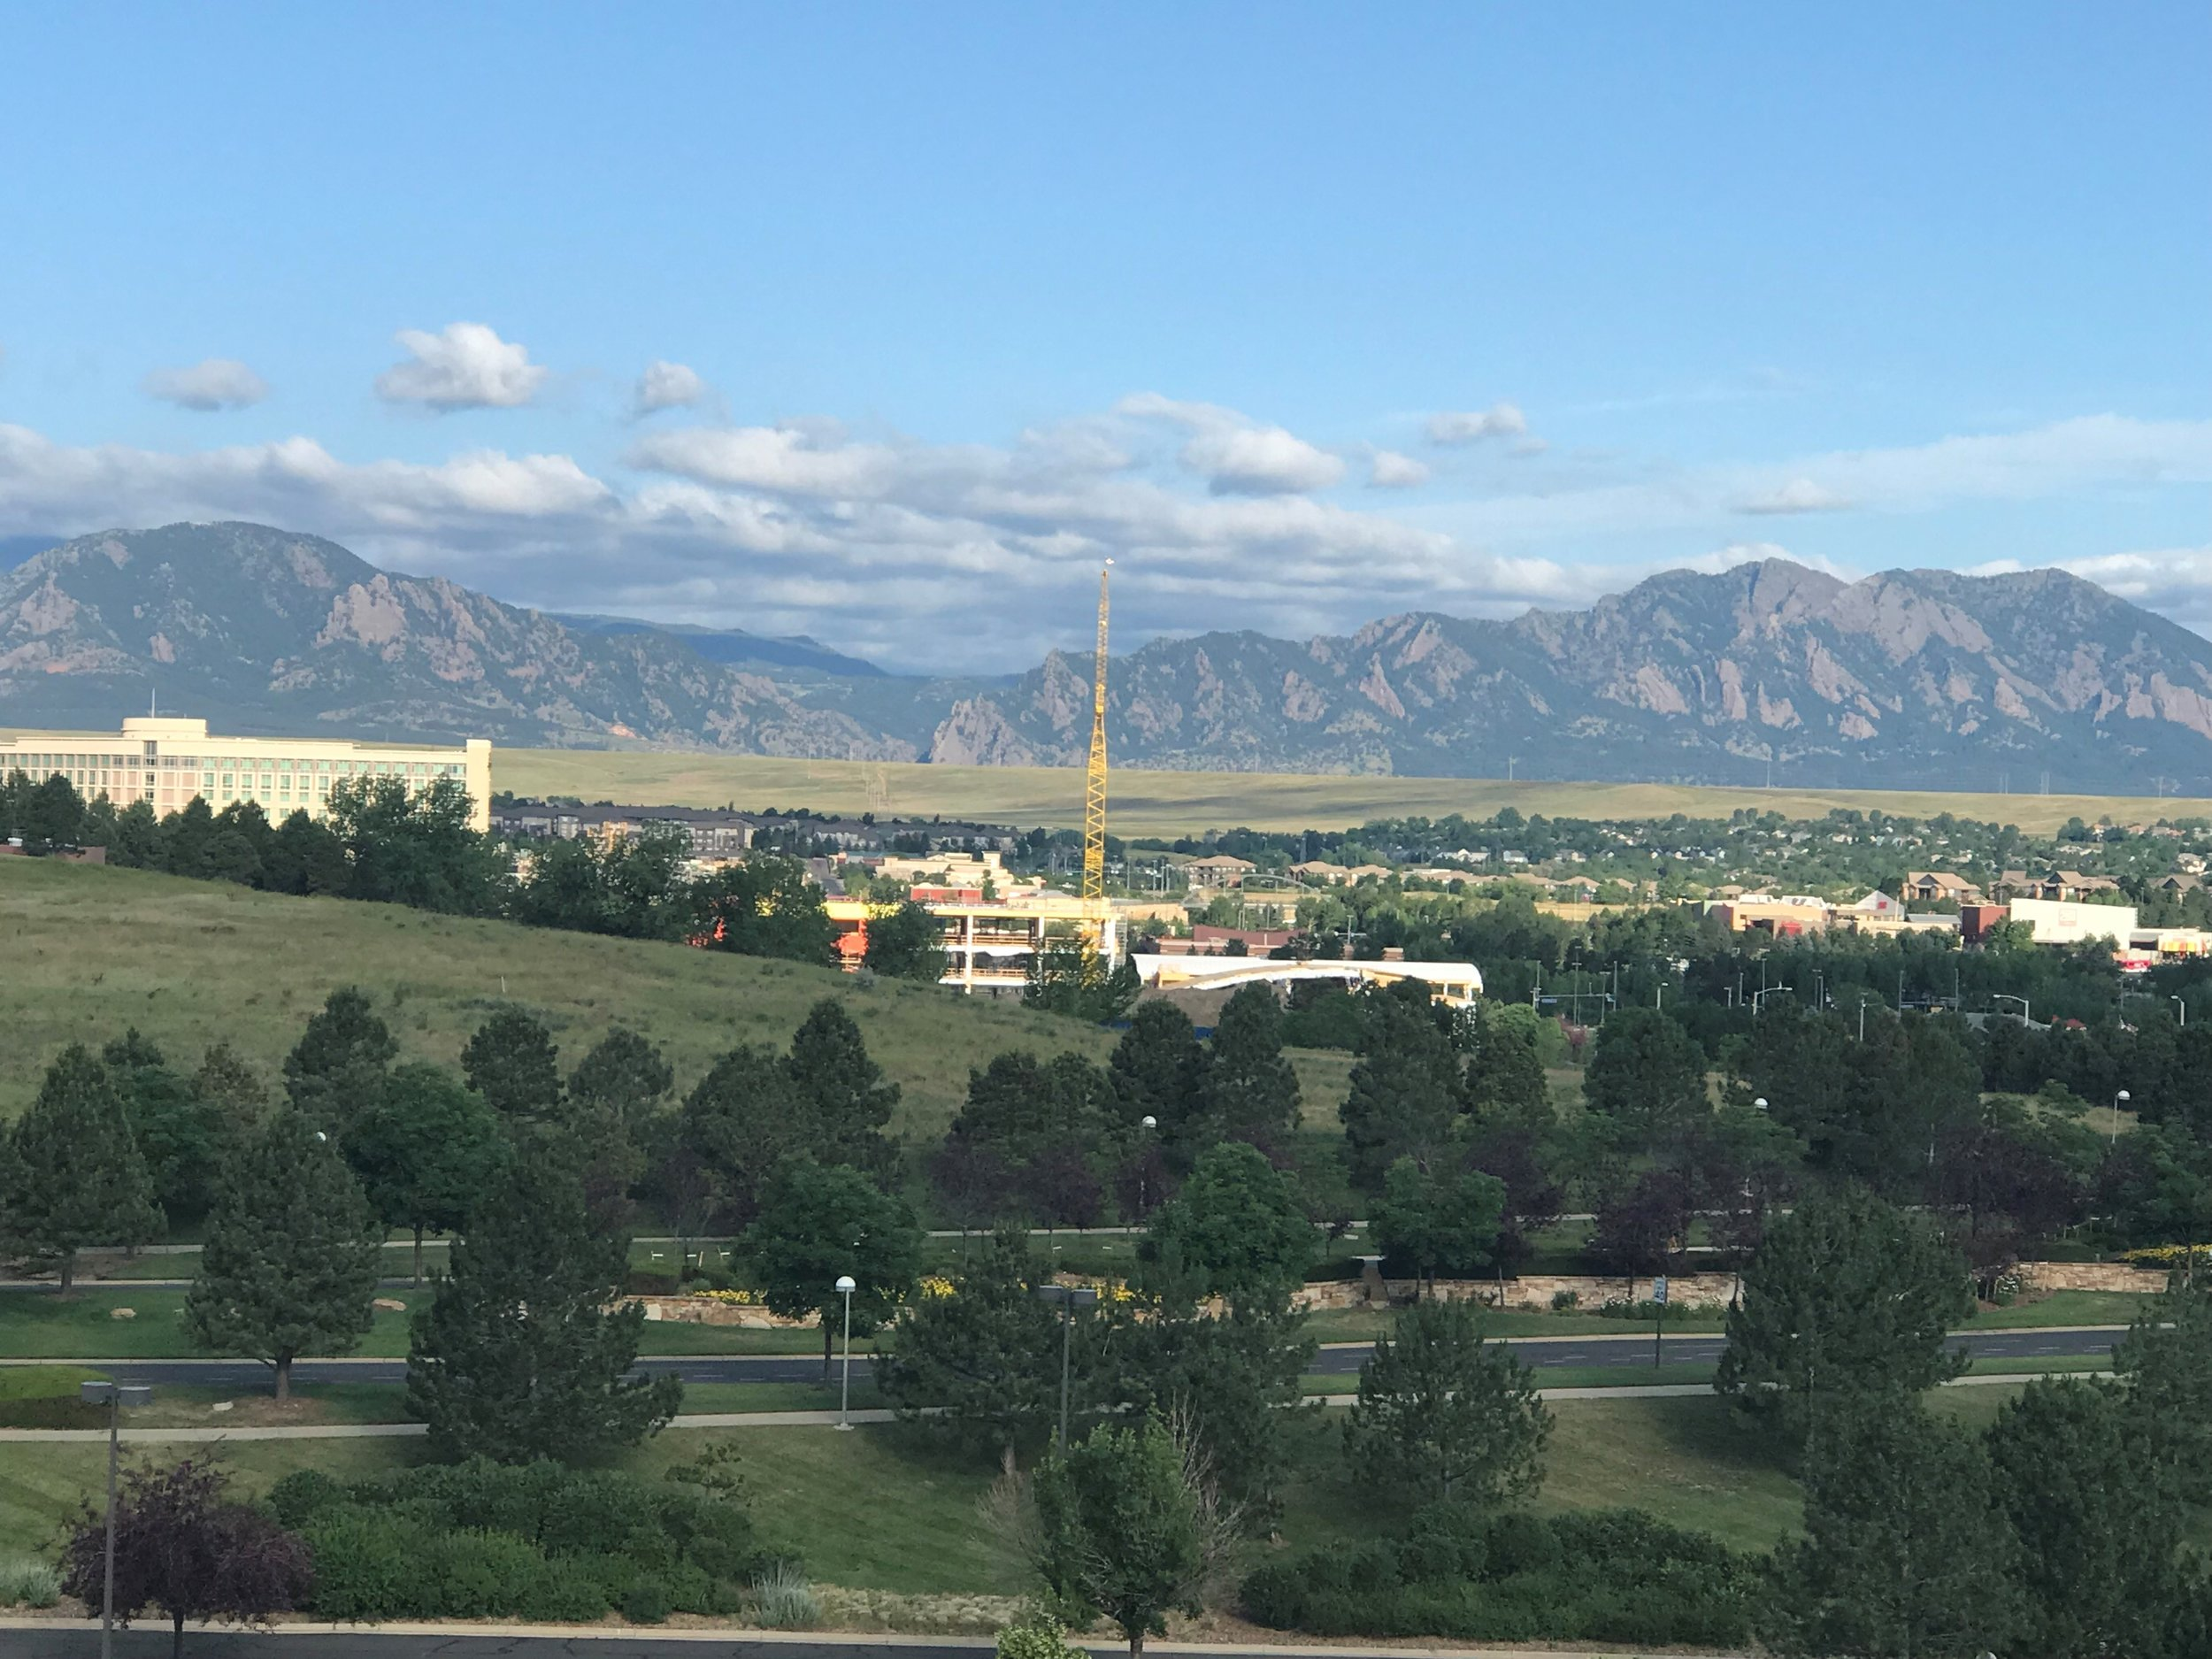 View of the mountains from the Omni Hotel